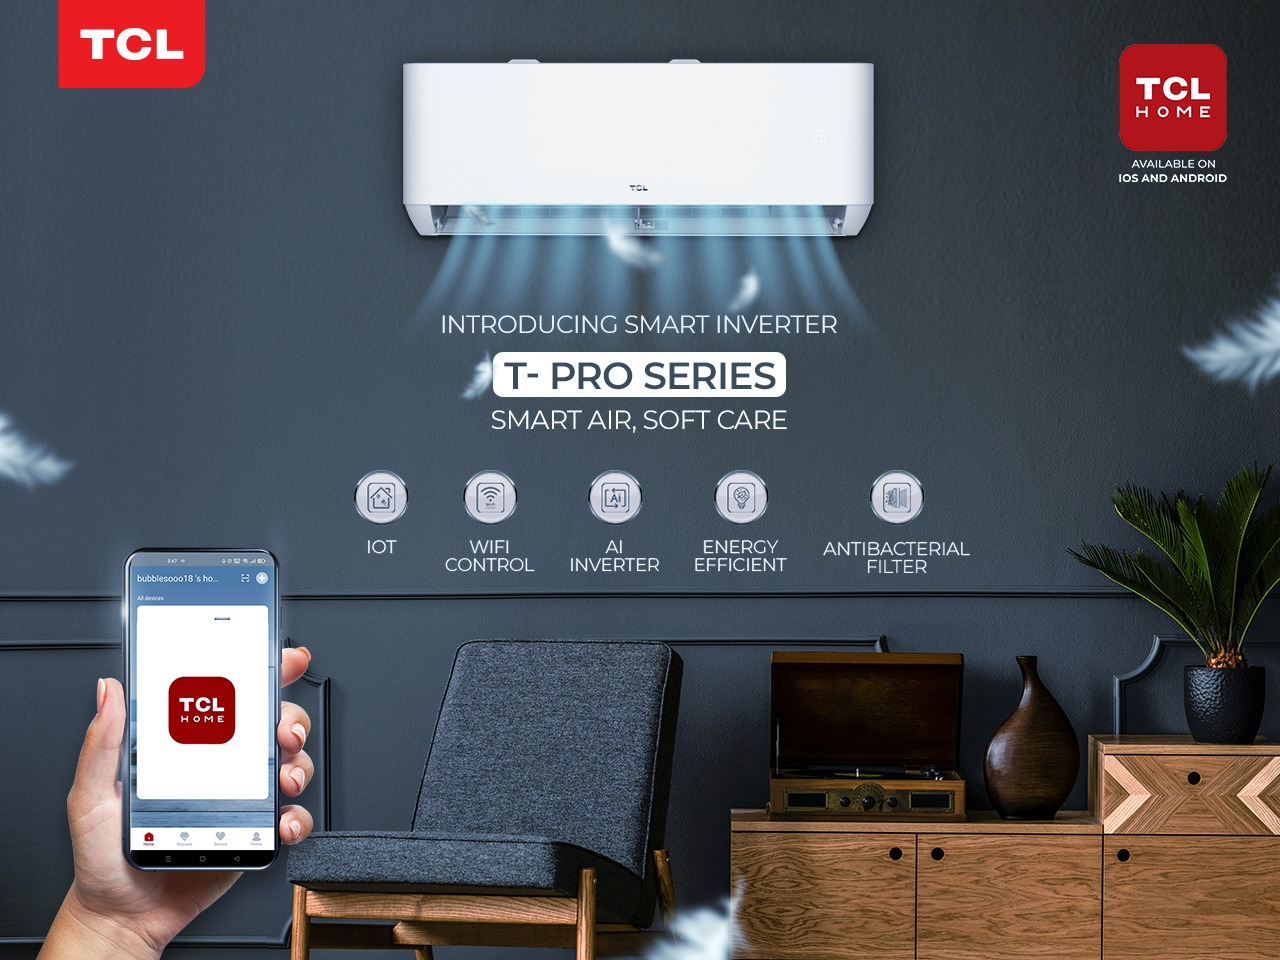 WhatsApp Image 2021 05 25 at 8.30.39 PM - TCL Pakistan Launches T- Pro T3 Full DC Inverter AC with IoT Wi-Fi for a Smarter Living